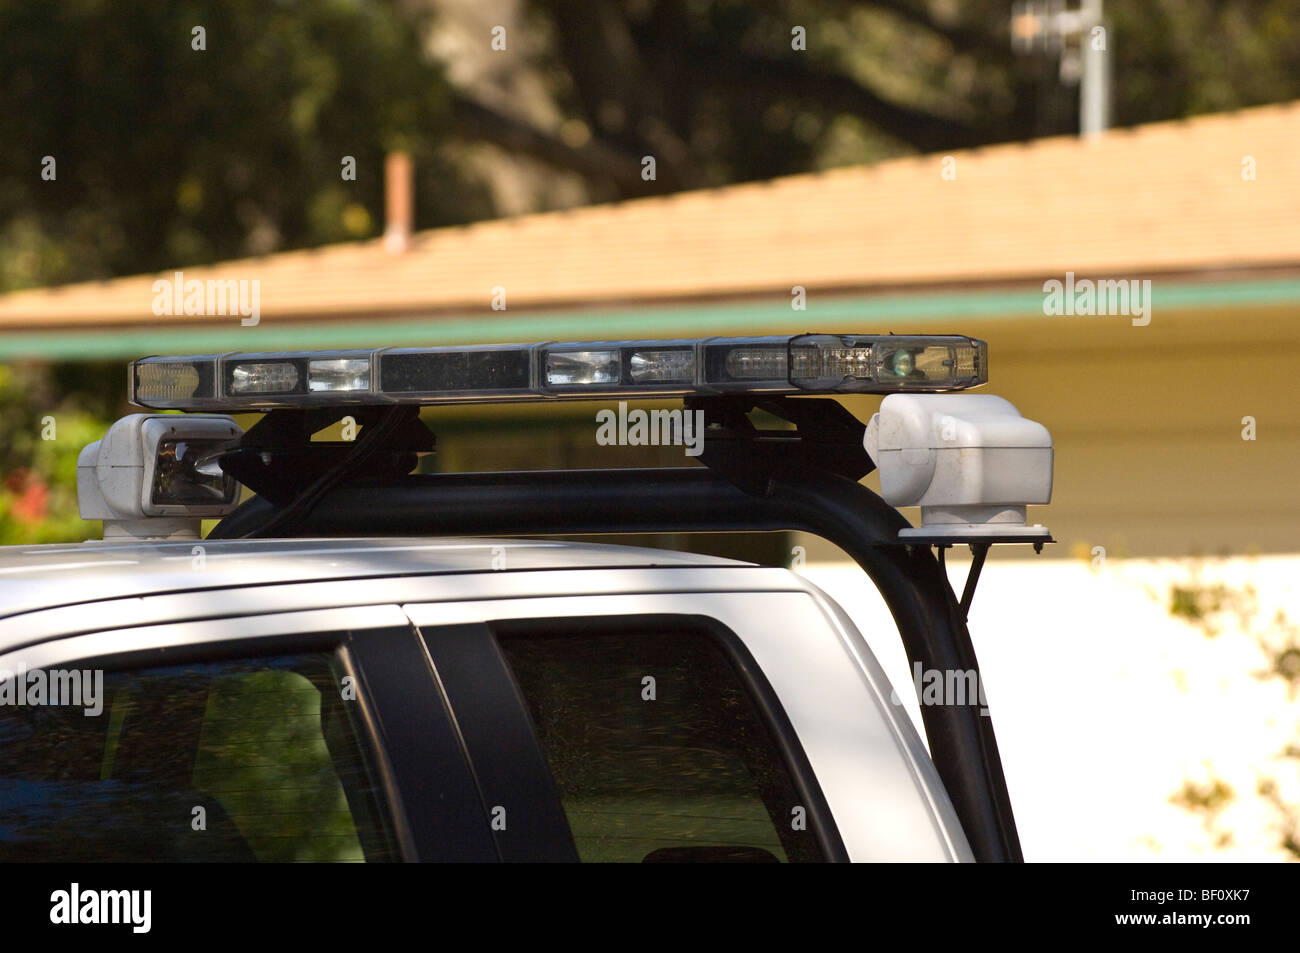 Strobe lights on top of an emergency vehicle Stock Photo: 26451131